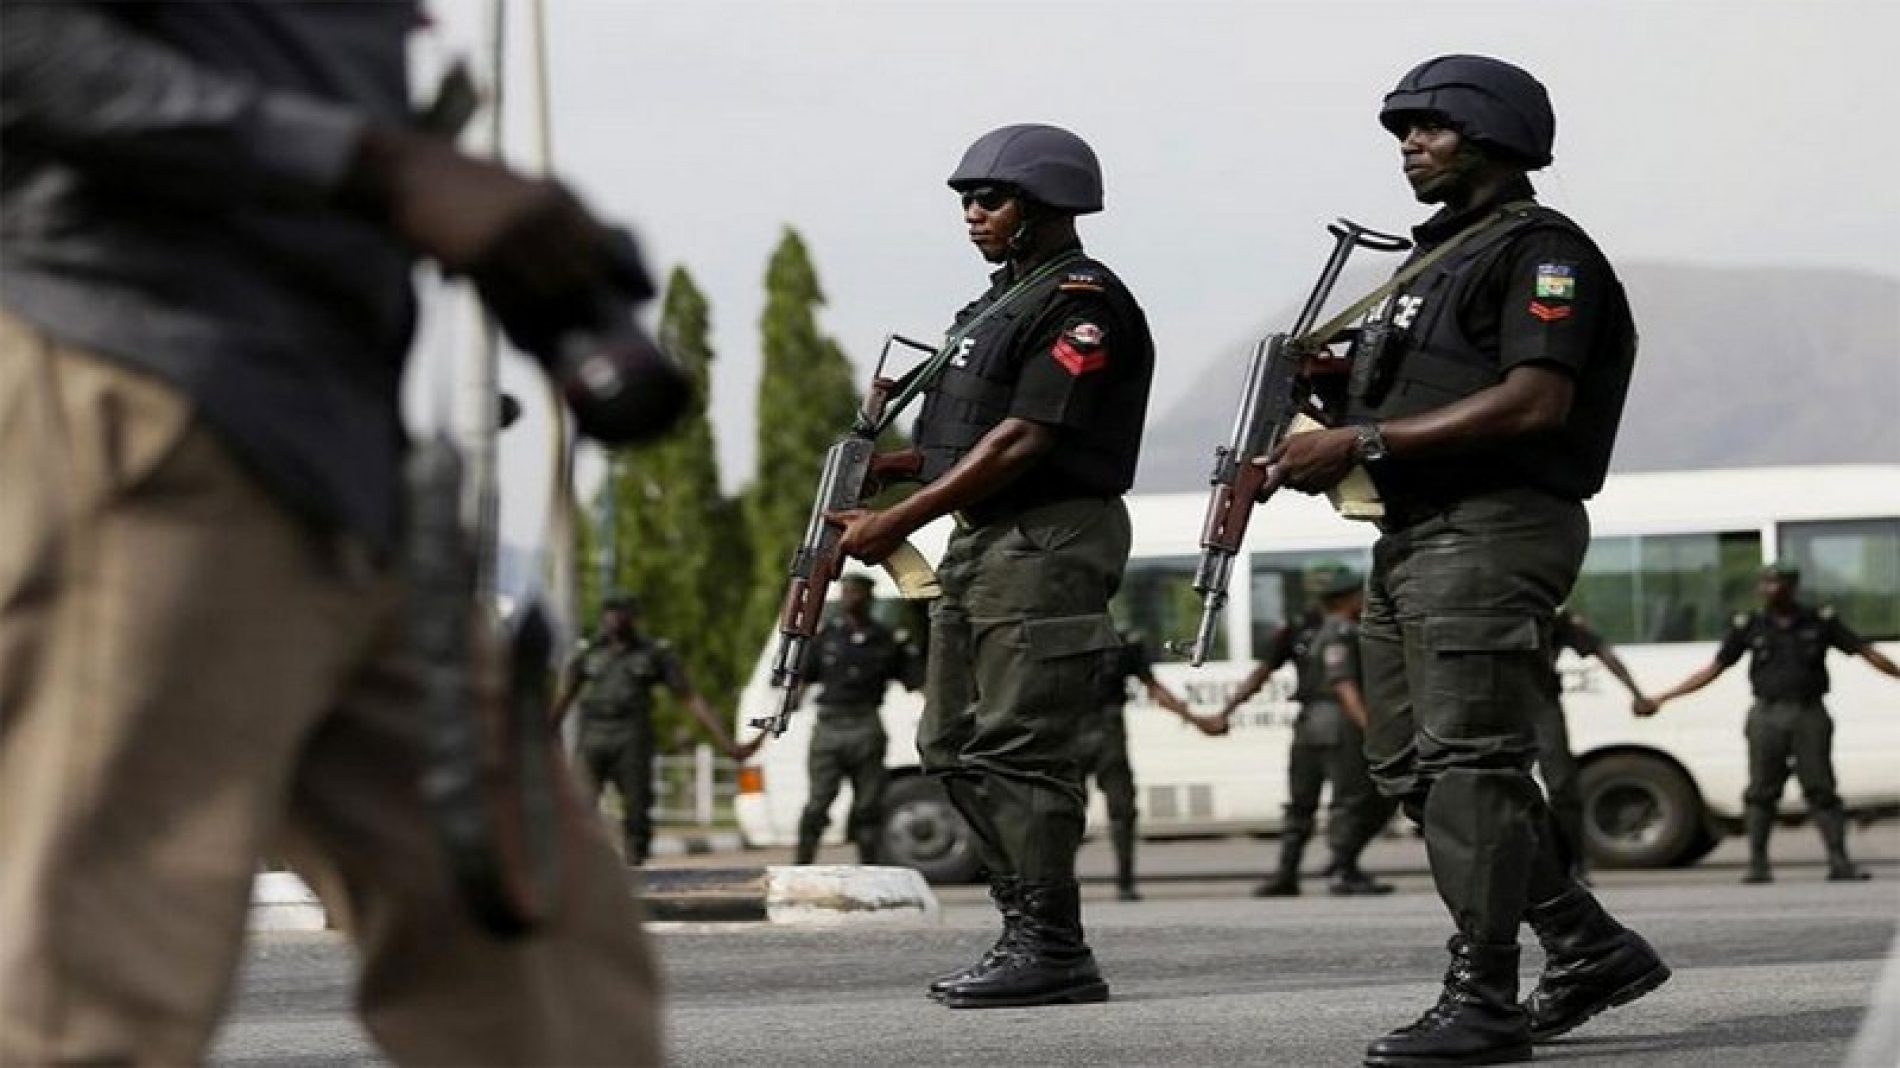 Kito Alert: The Nigerian Police Is On the Prowl